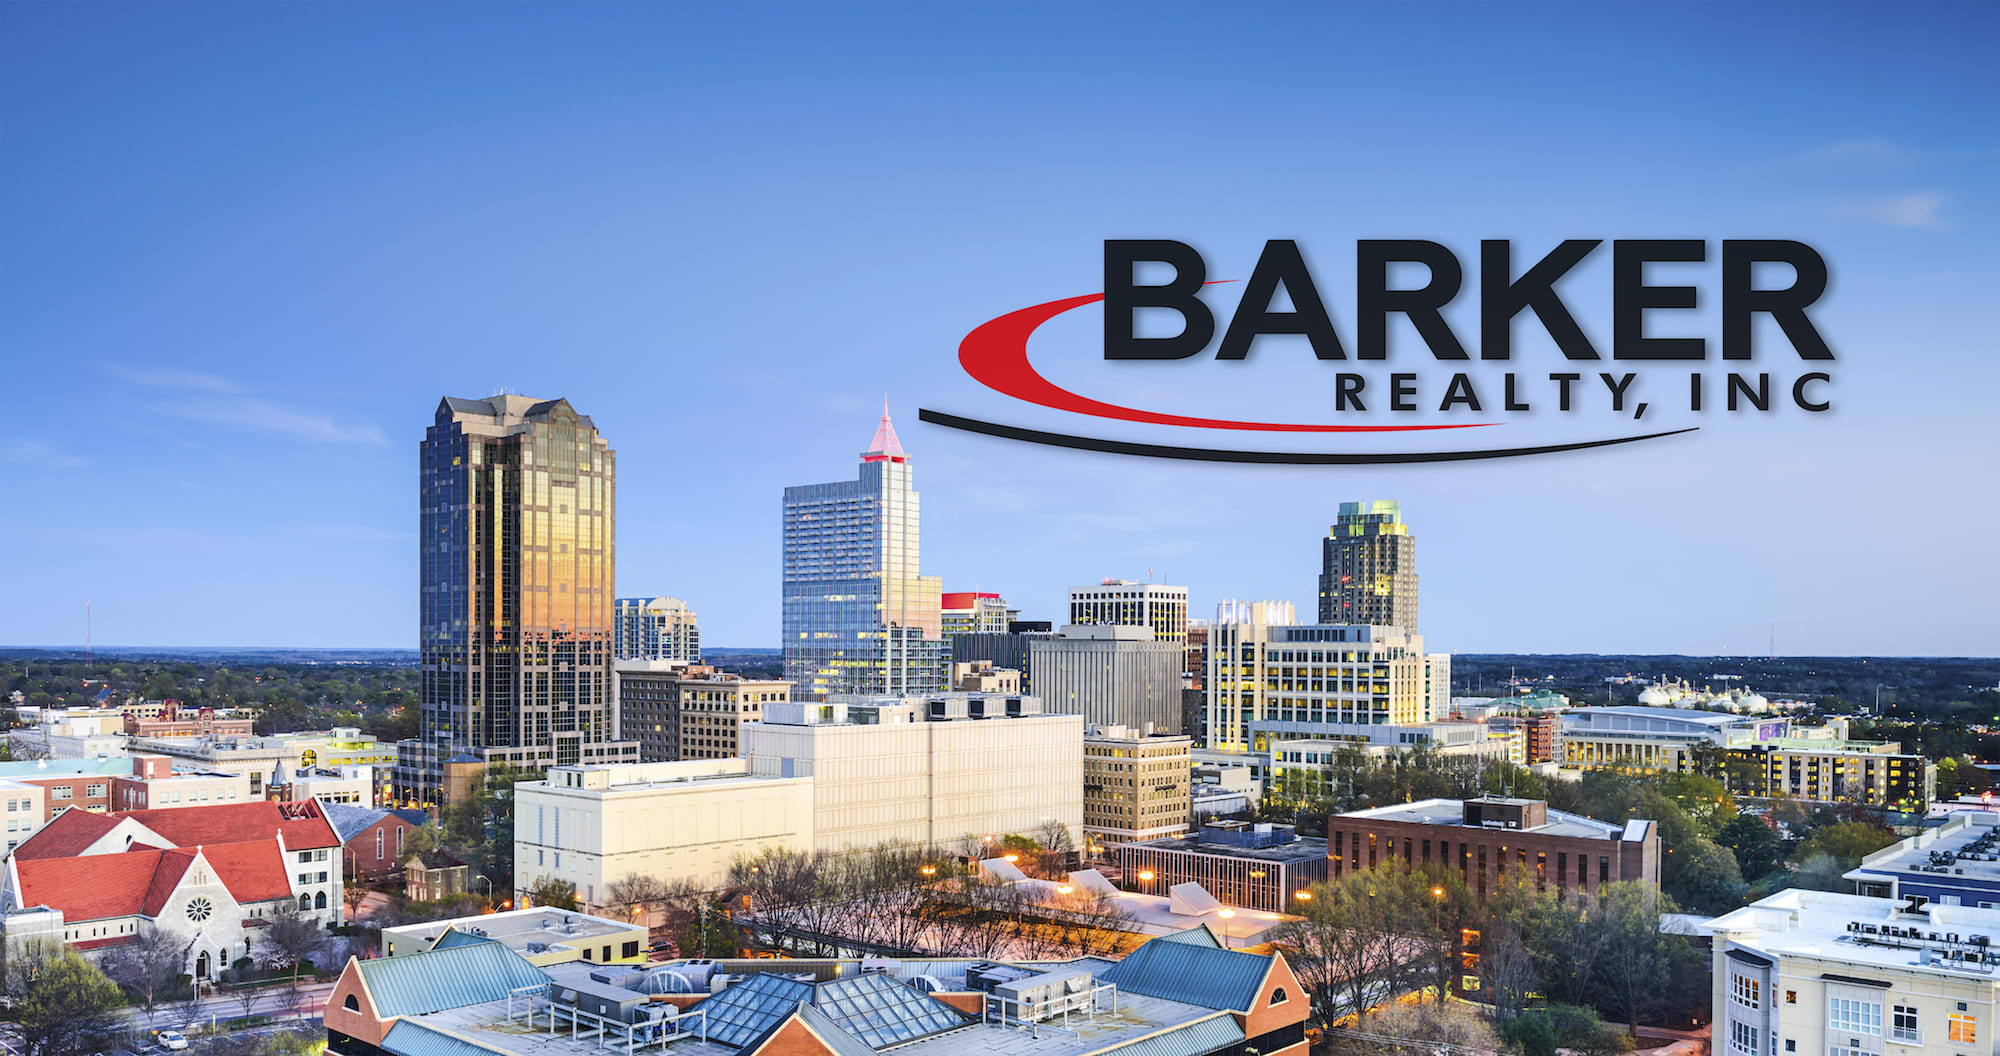 With Their Finger on the Pulse of the Industry, Barker Realty Delivers a Phenomenal Resident Experience